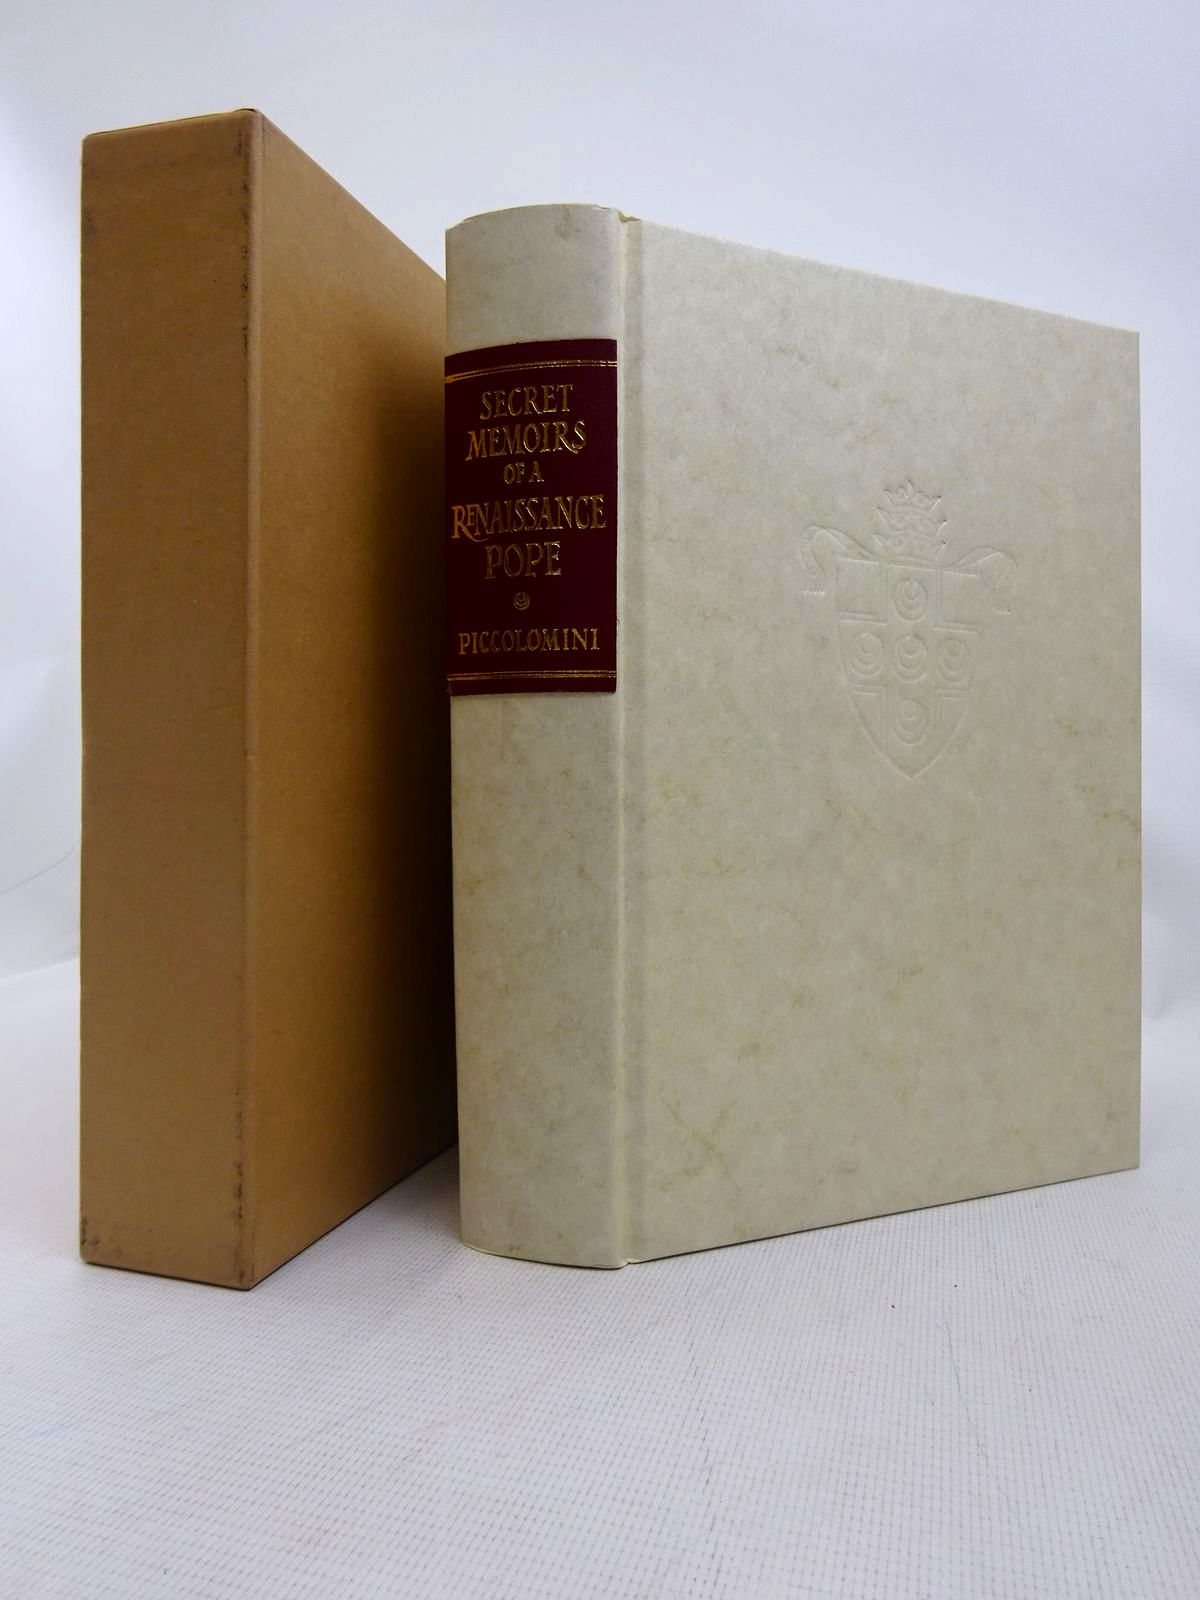 Photo of SECRET MEMOIRS OF A RENAISSANCE POPE written by Piccolomini, Aeneas Sylvius published by Folio Society (STOCK CODE: 1816628)  for sale by Stella & Rose's Books